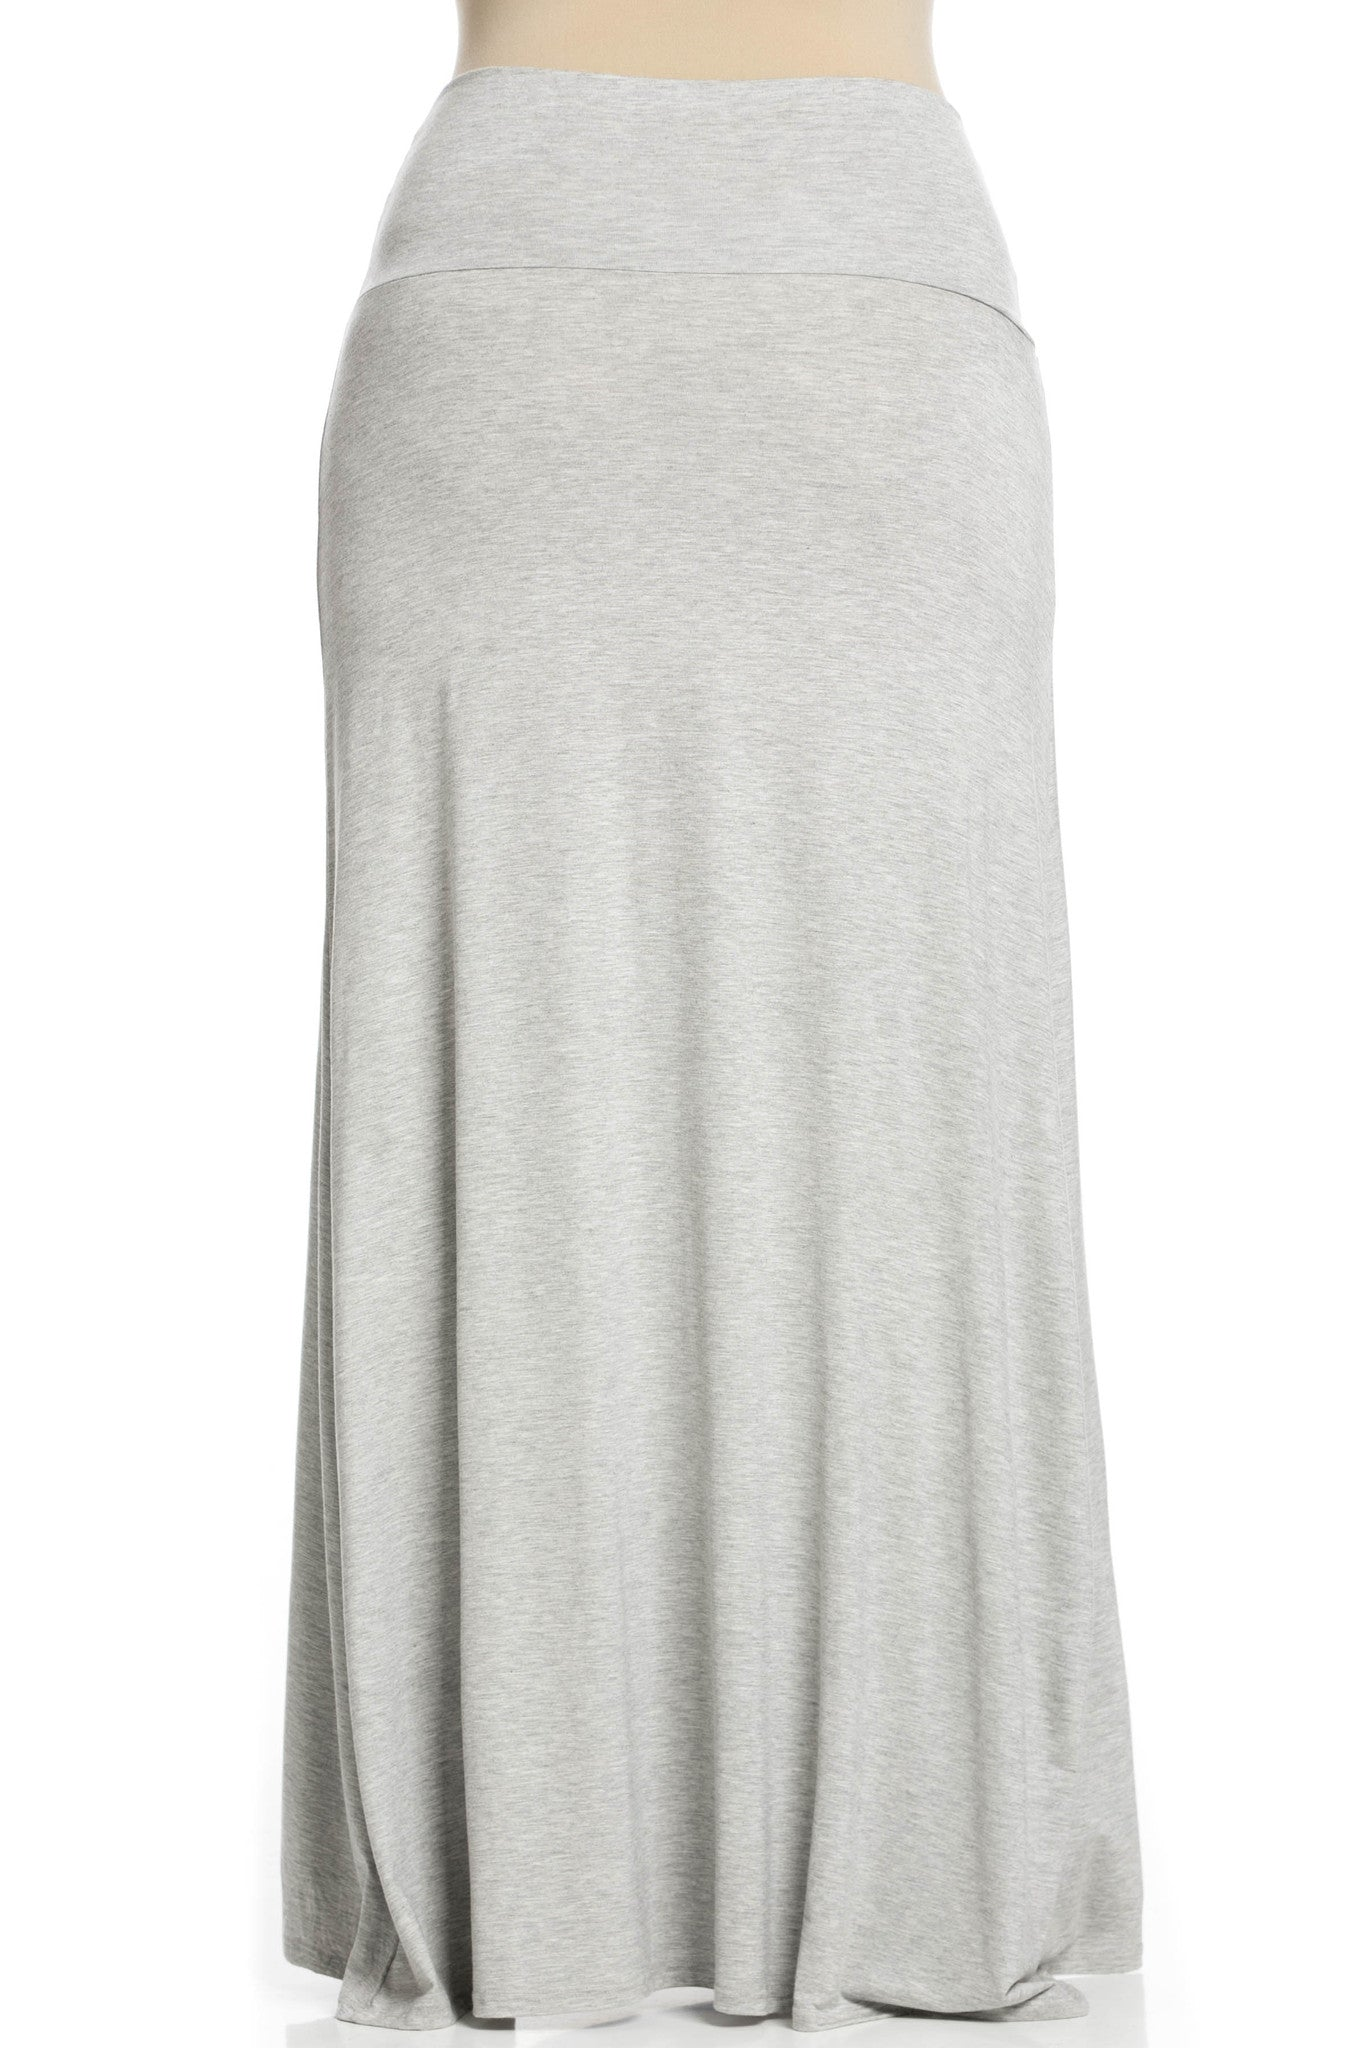 Fold Over Two-Way Maxi Skirt Heather Grey - Skirts - My Yuccie - 12